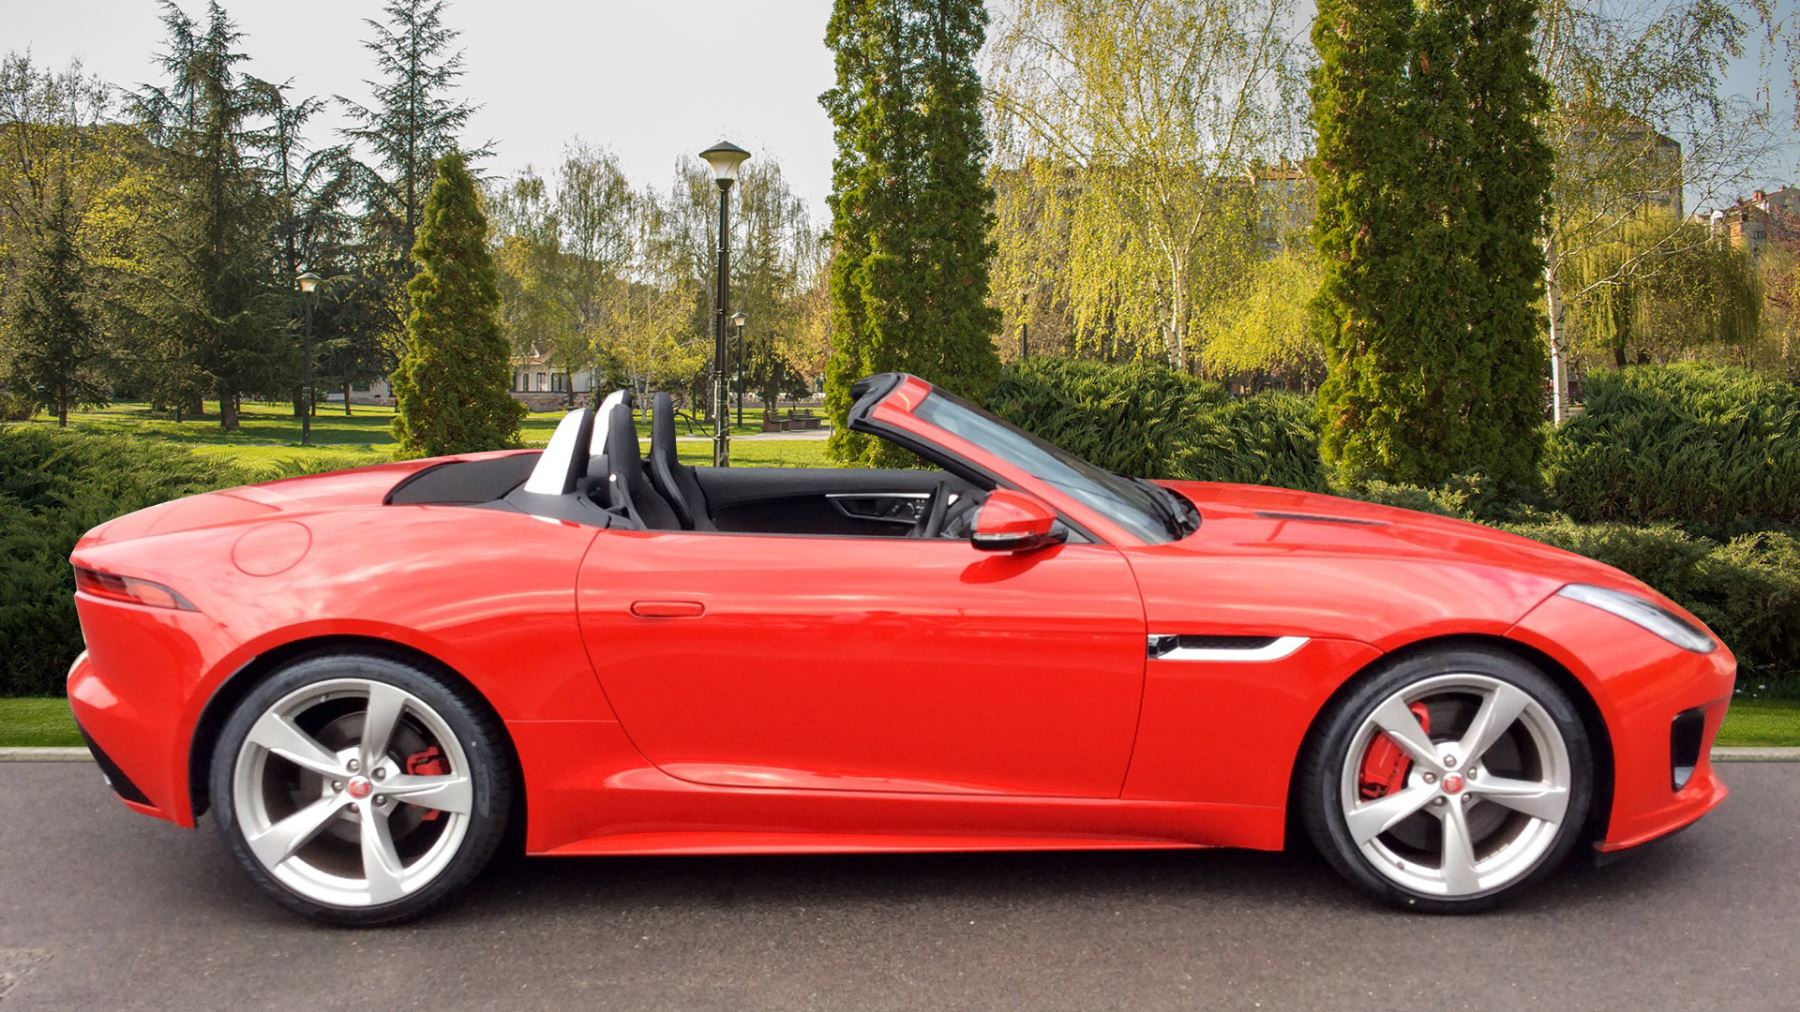 Jaguar F-TYPE 3.0 [380] Supercharged V6 R-Dynamic 2dr image 5